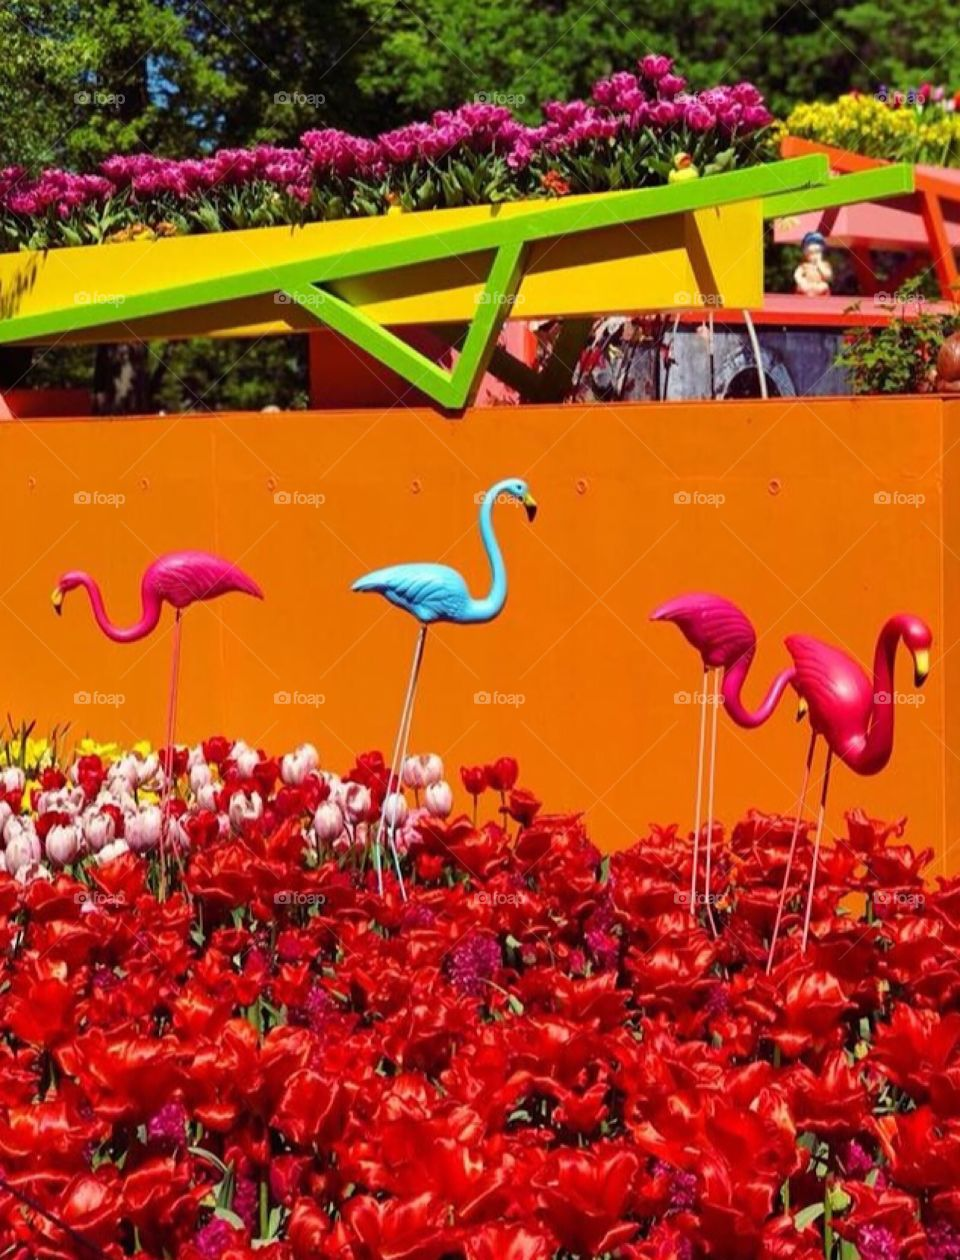 Amsterdam extremely vibrant flowers and flamingos